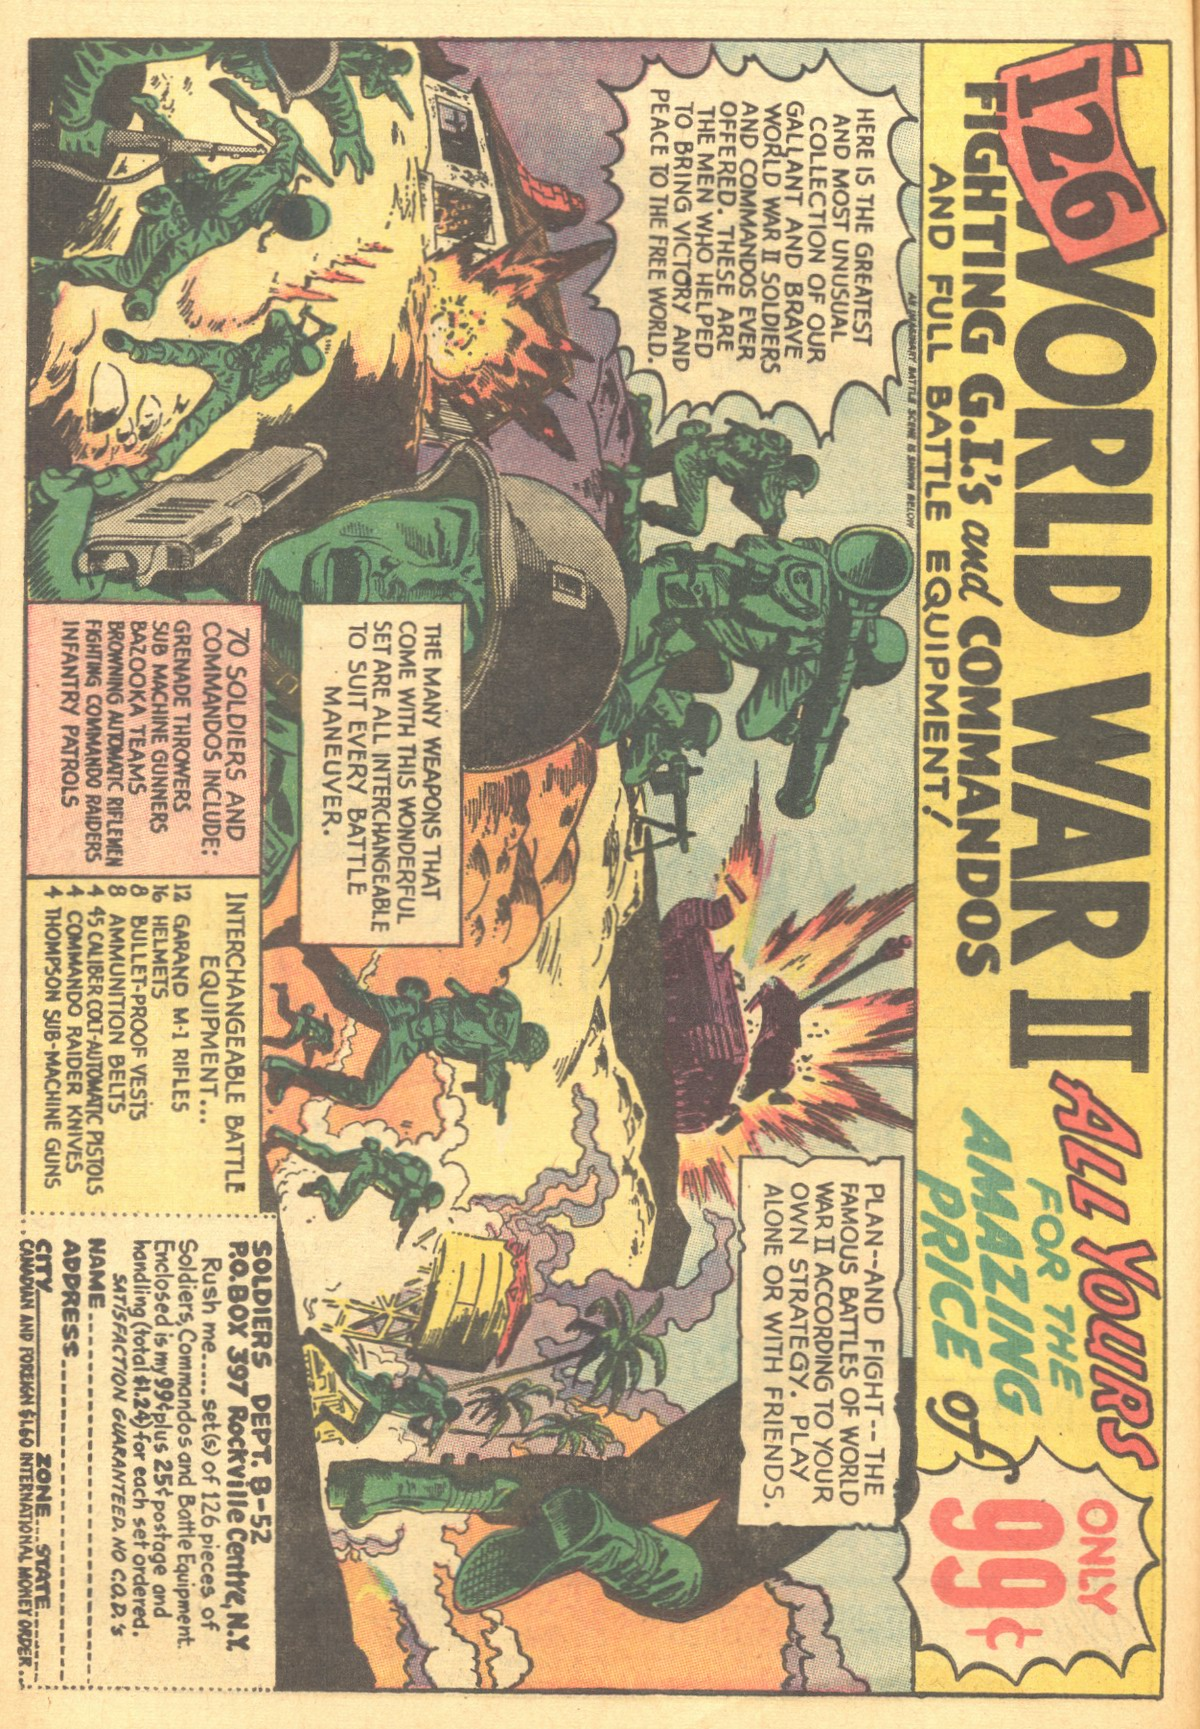 Read online 80 Page Giant comic -  Issue #7 - 54